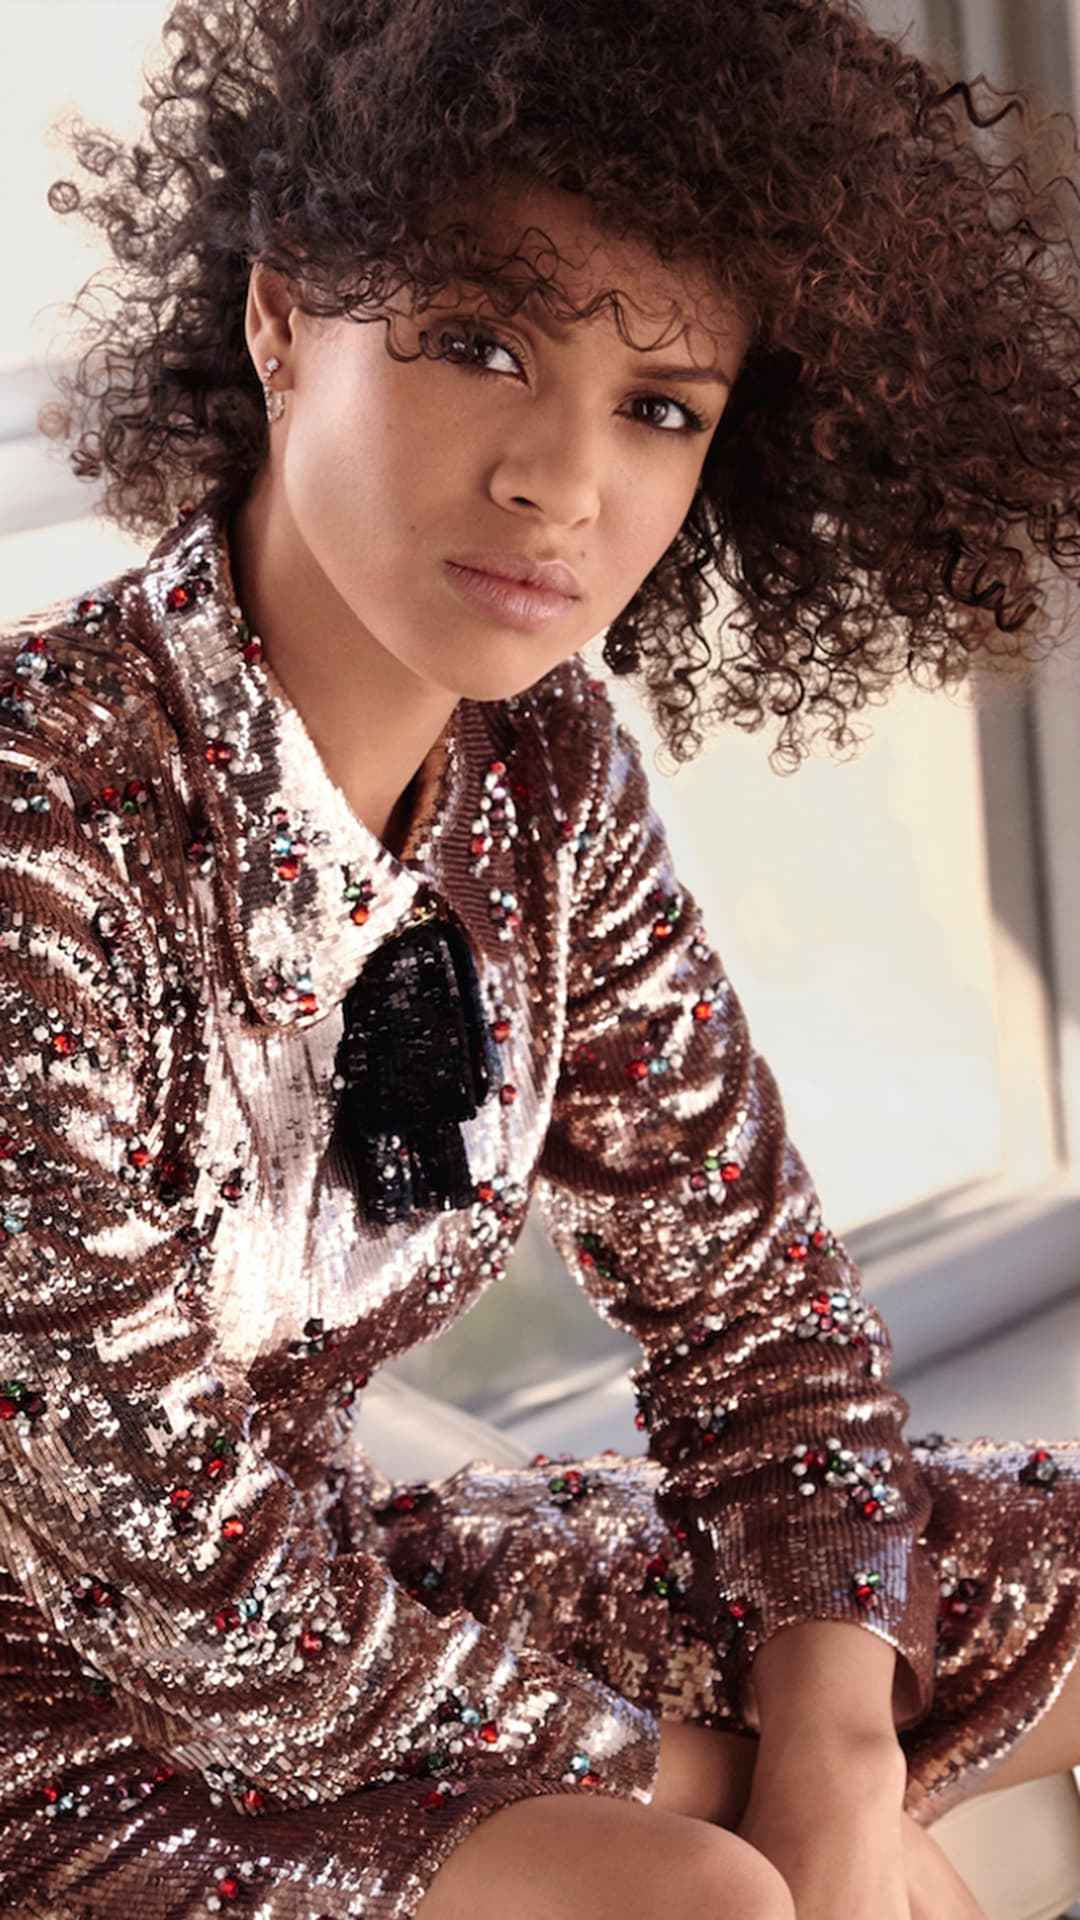 Wallpapers Hd Technology Gugu Mbatha Raw Wallpapers High Quality Resolution Download